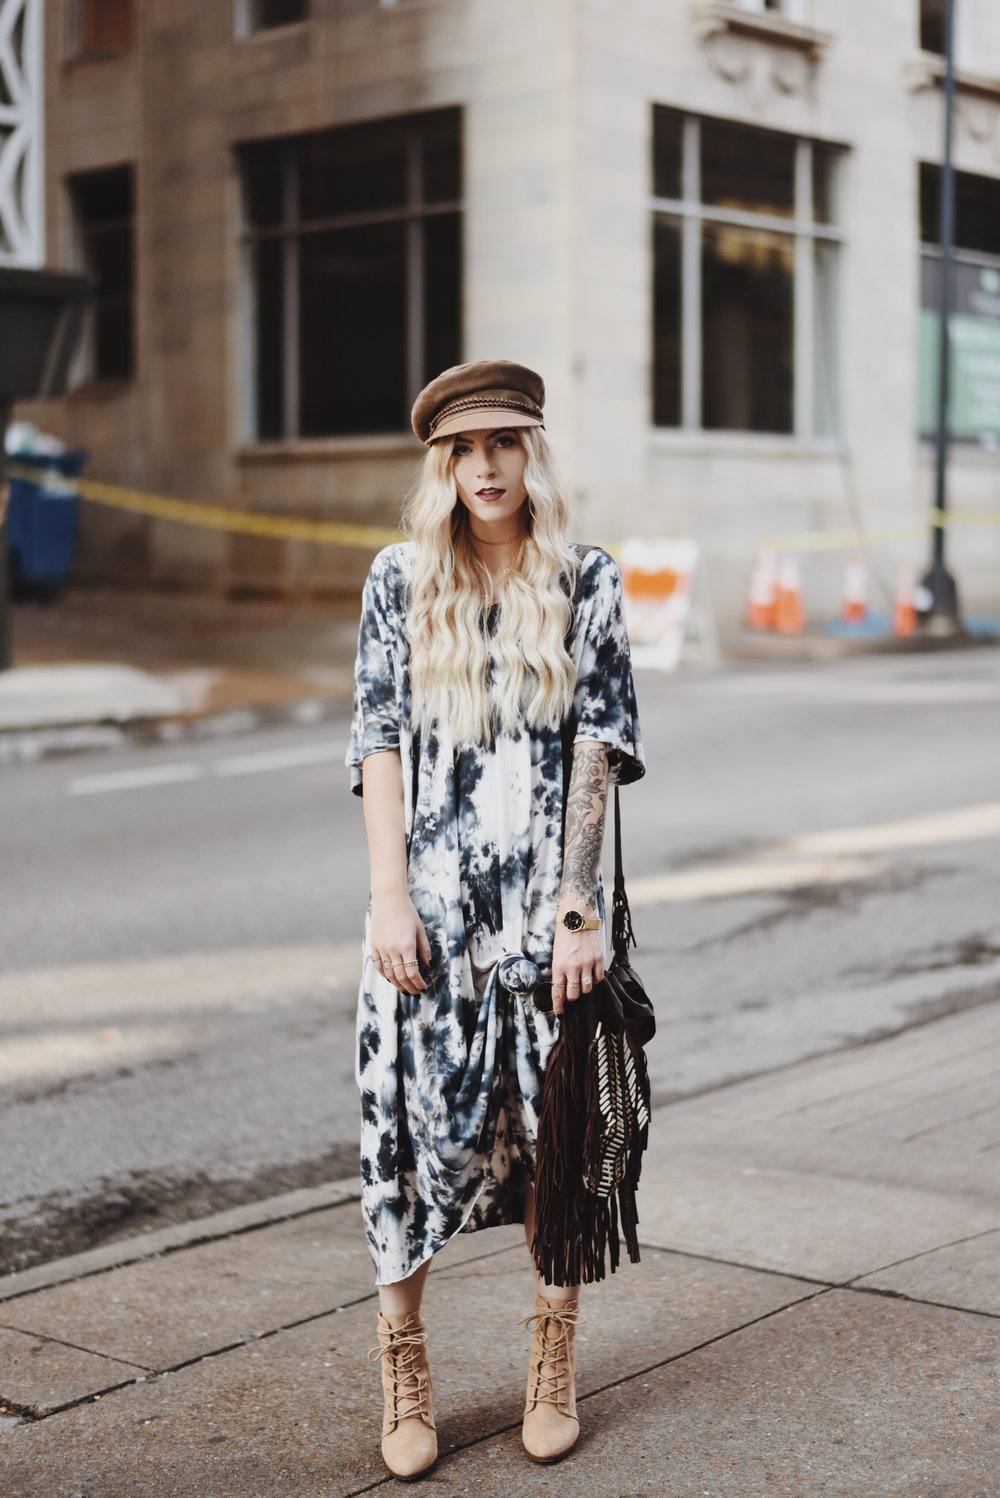 nashville boho fashion blogger 6.jpg